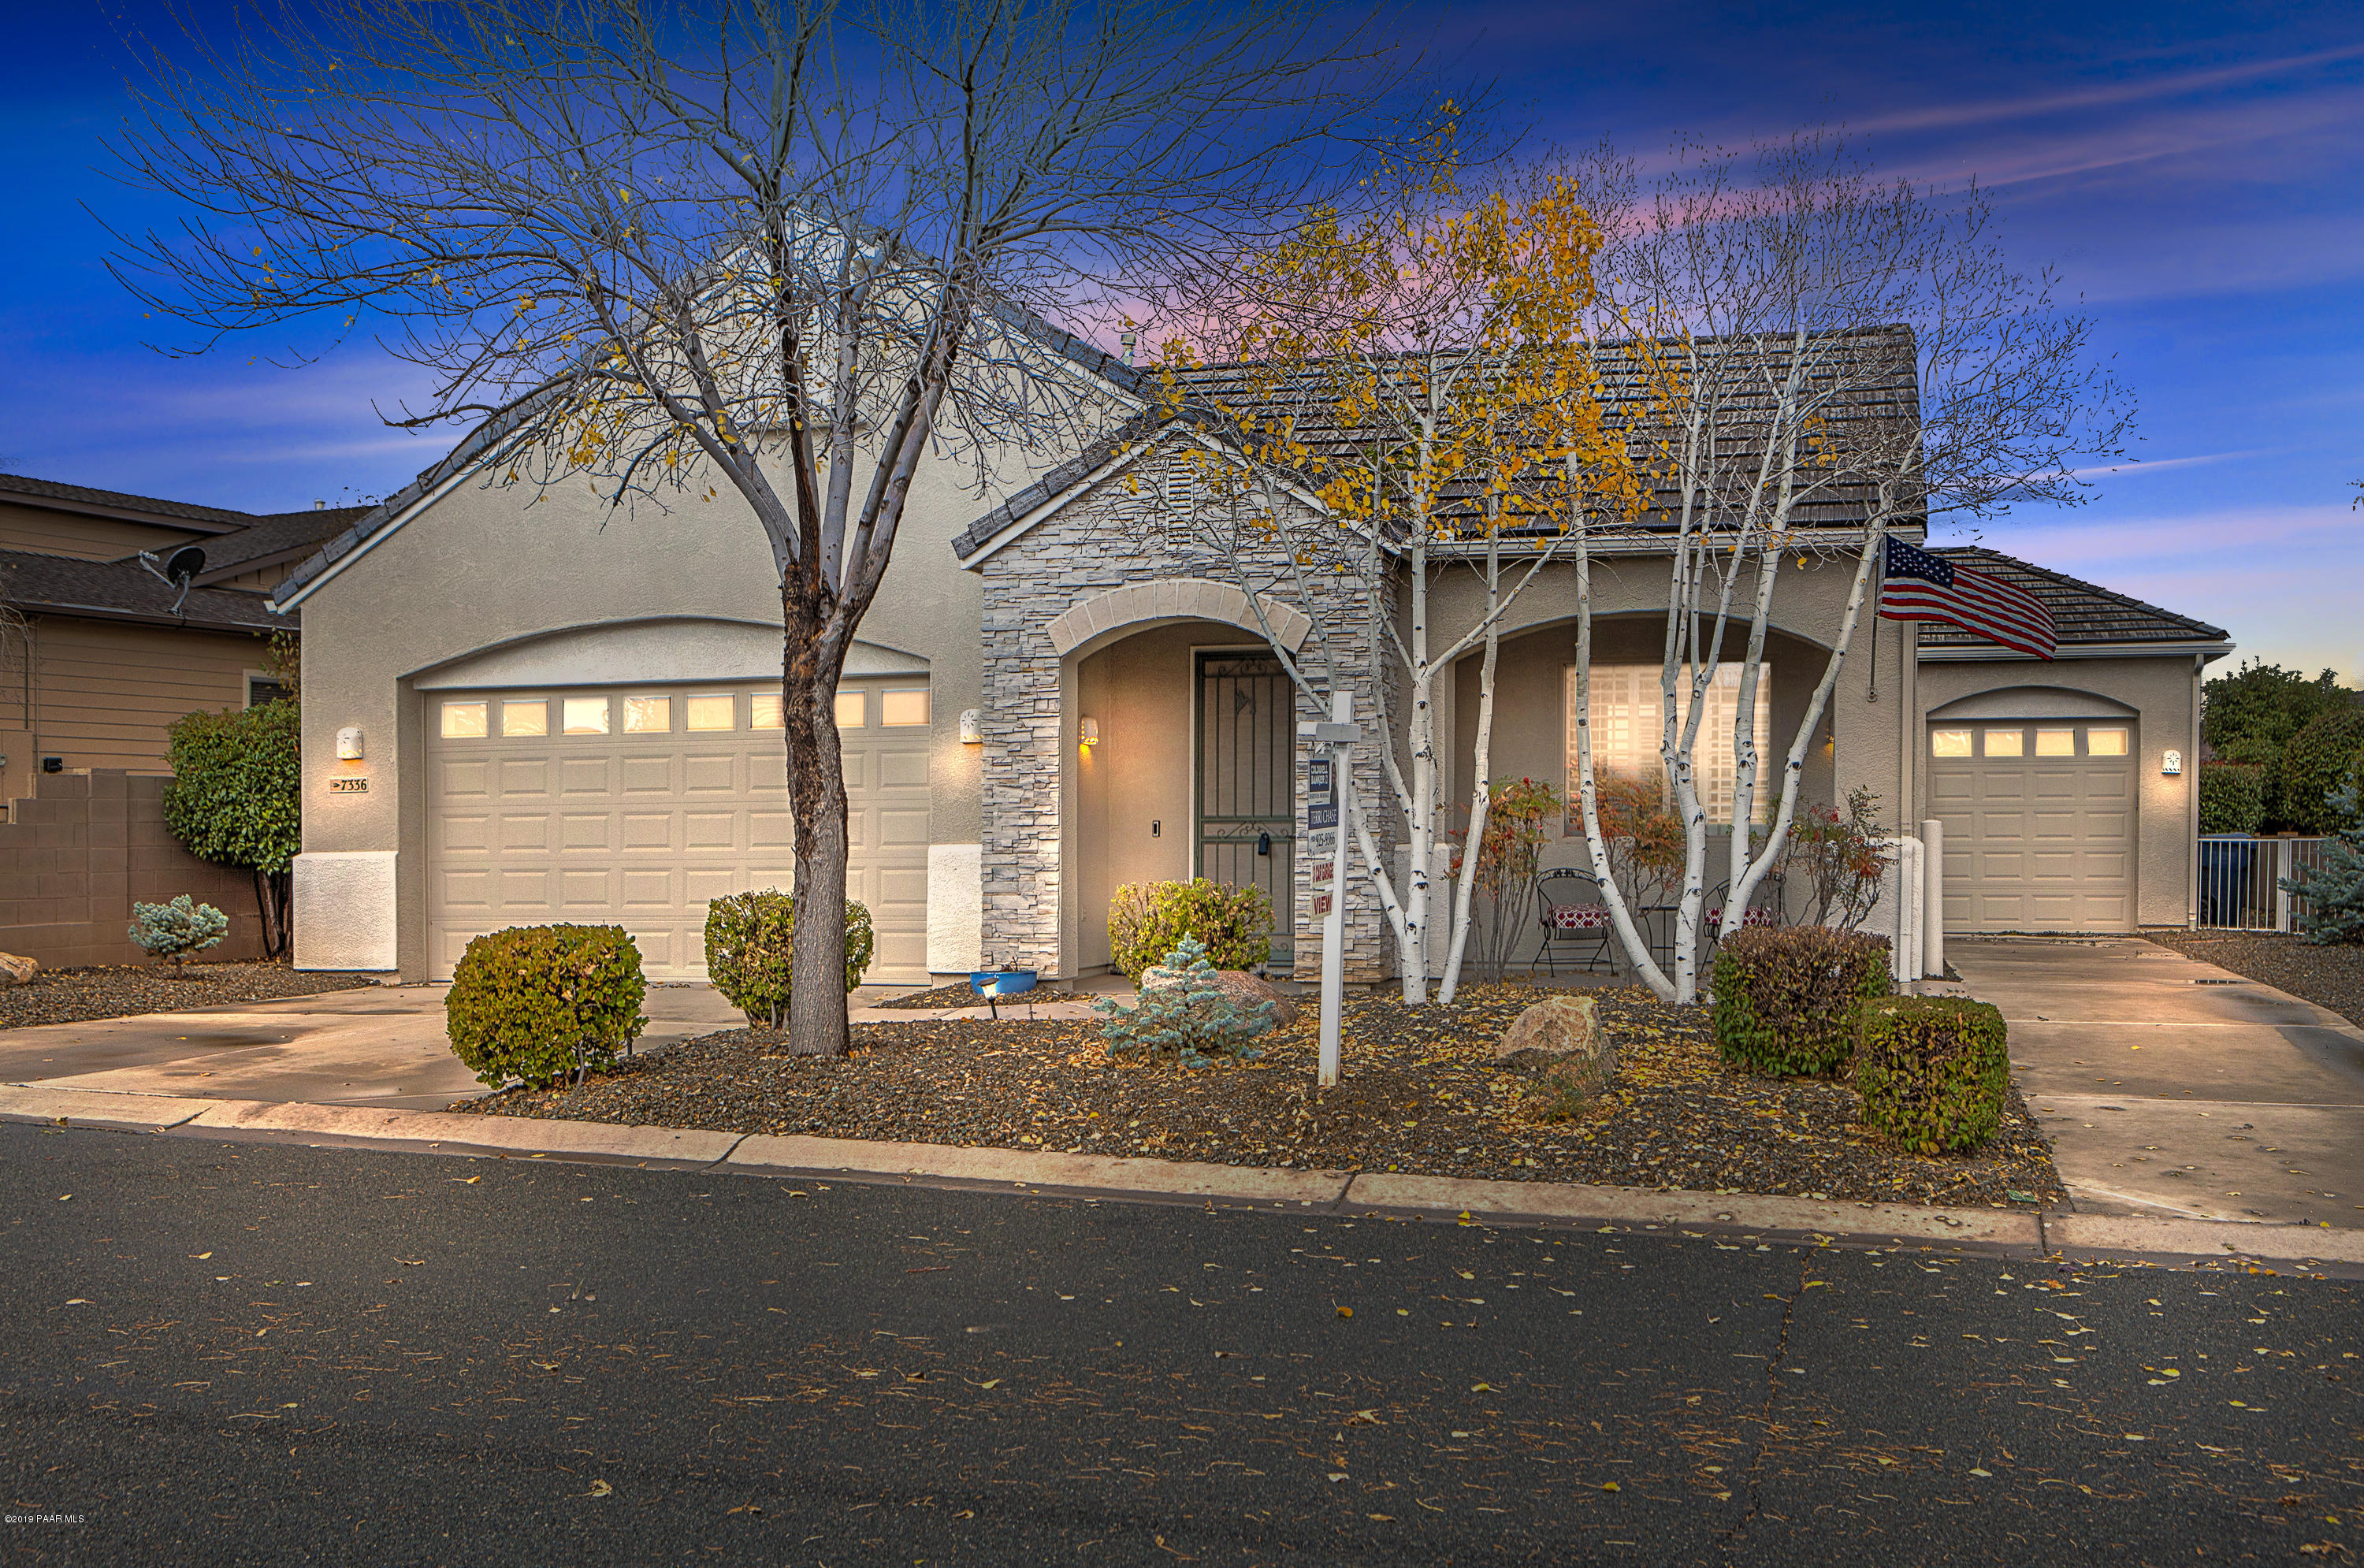 7336 E Cozy Camp Drive, Prescott Valley, Arizona